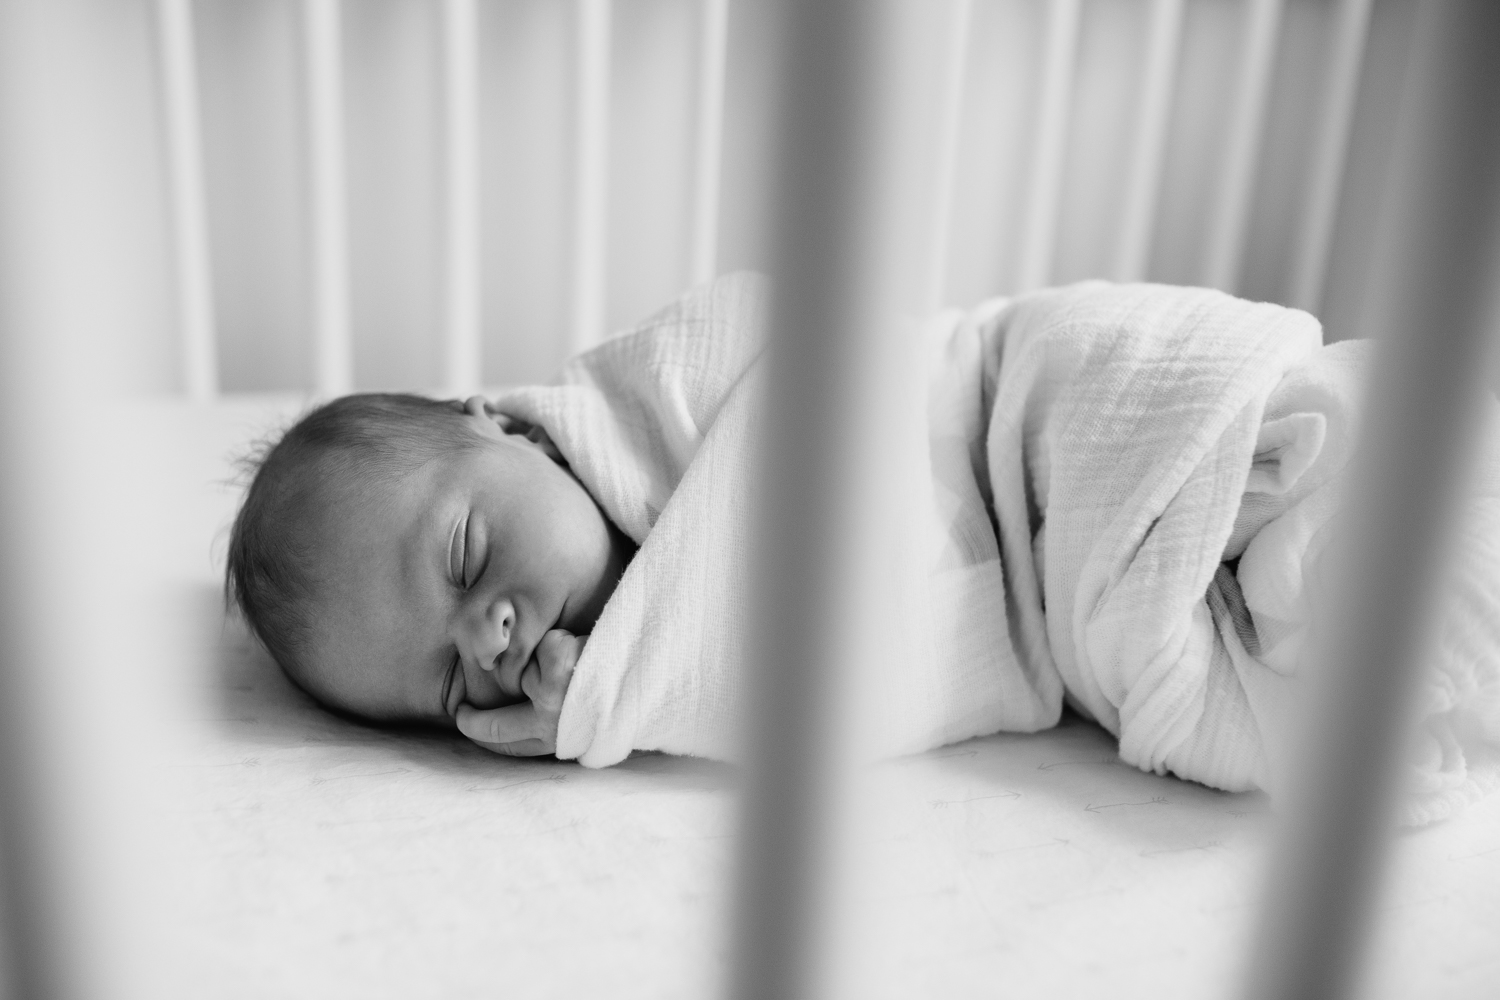 2 week old baby boy in white swaddle with grey stars, lying asleep in white crib with wood trim innursery, chewing on fingers - Barrie In-Home Photos